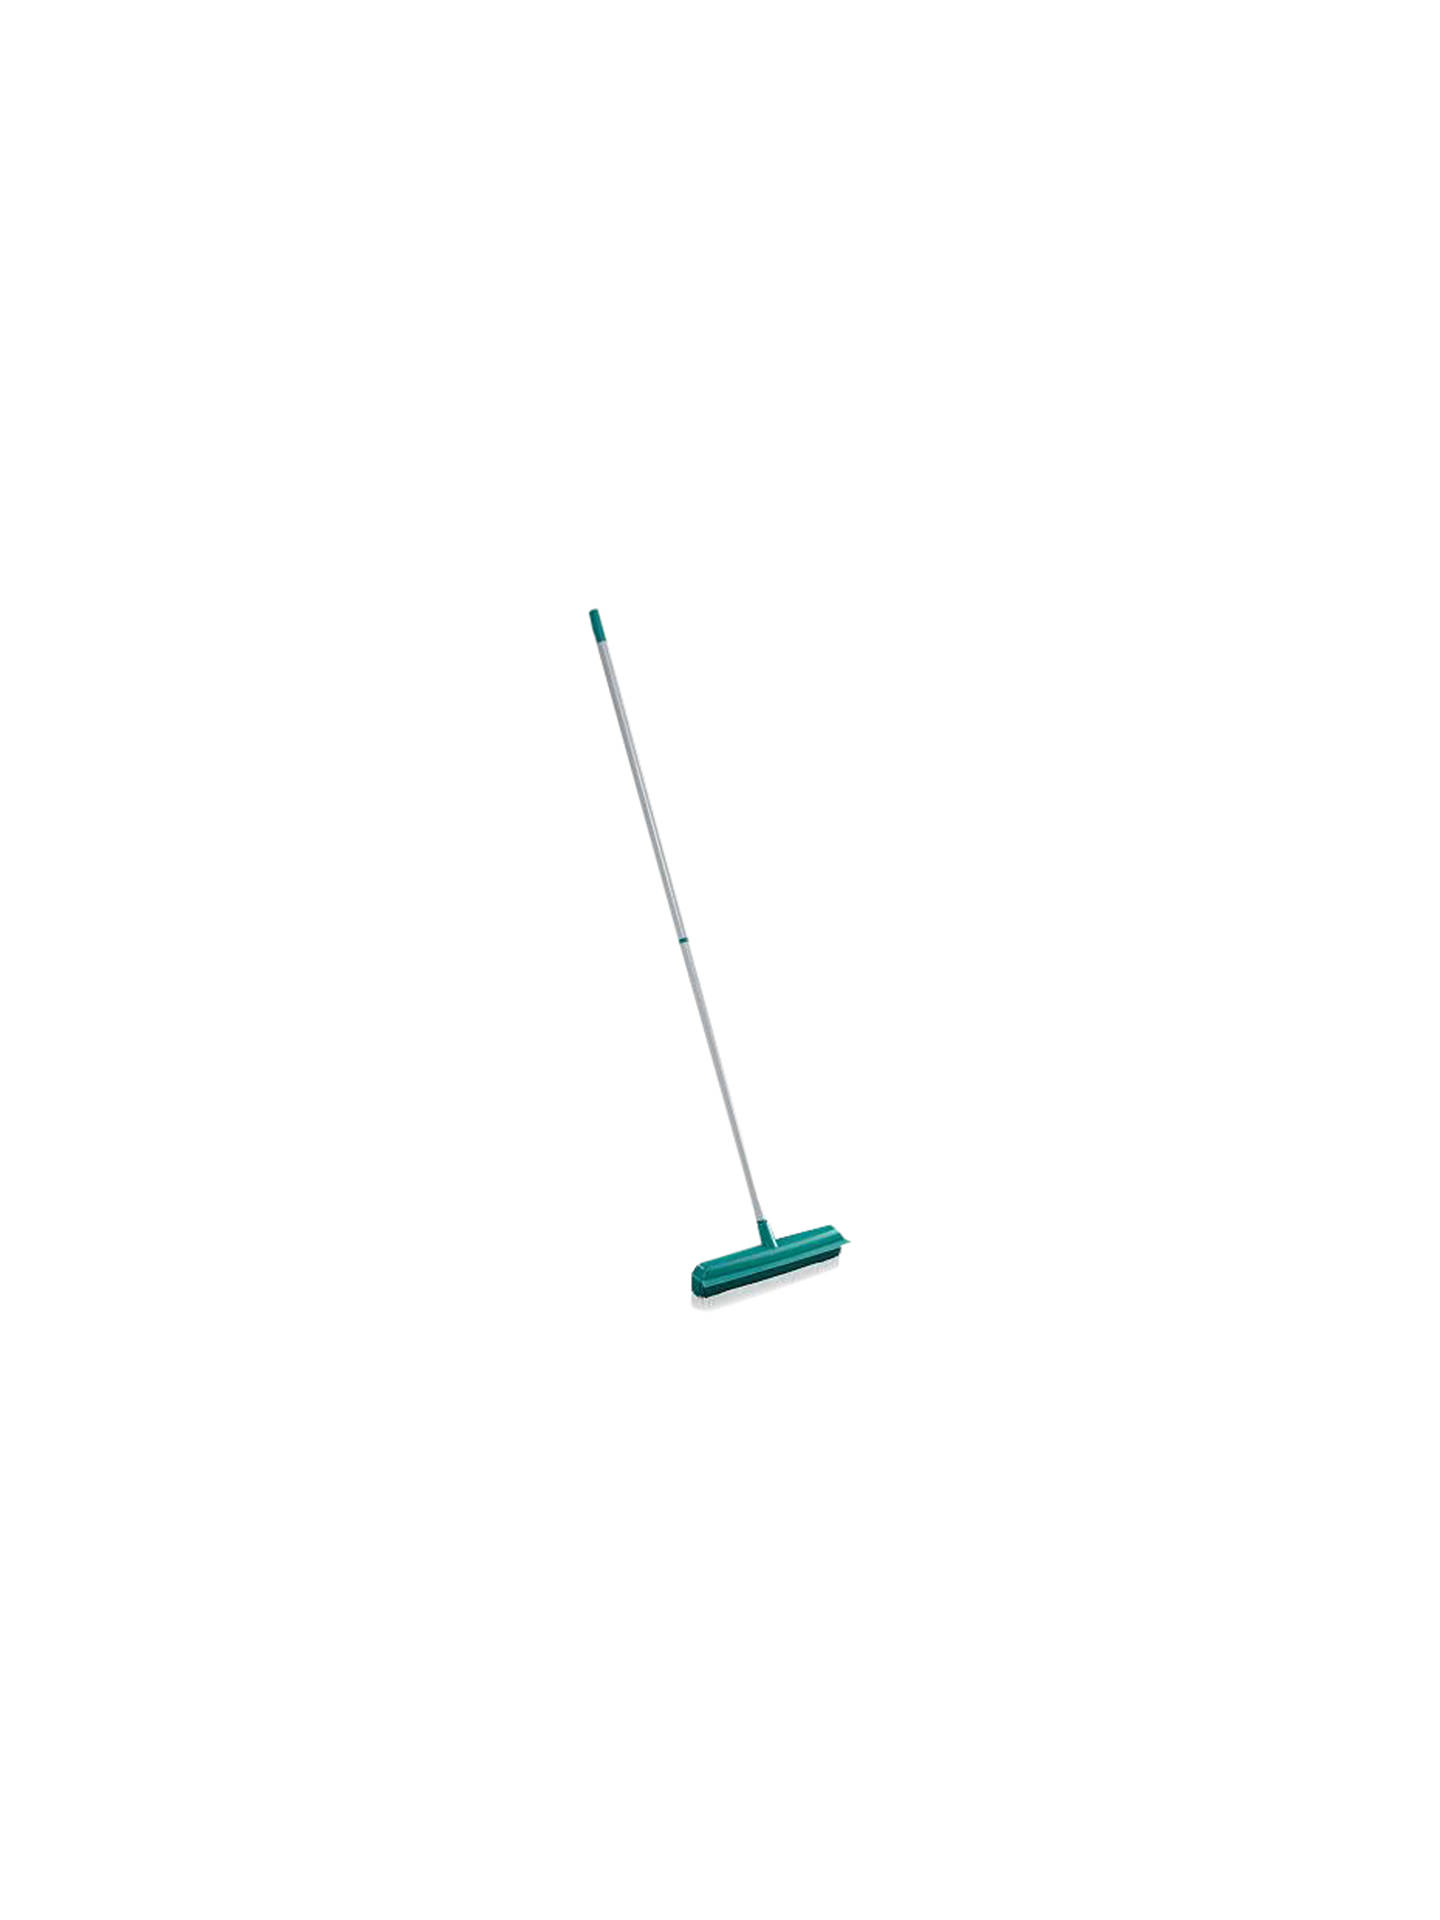 BuyLeifheit Rubber Broom Online at johnlewis.com